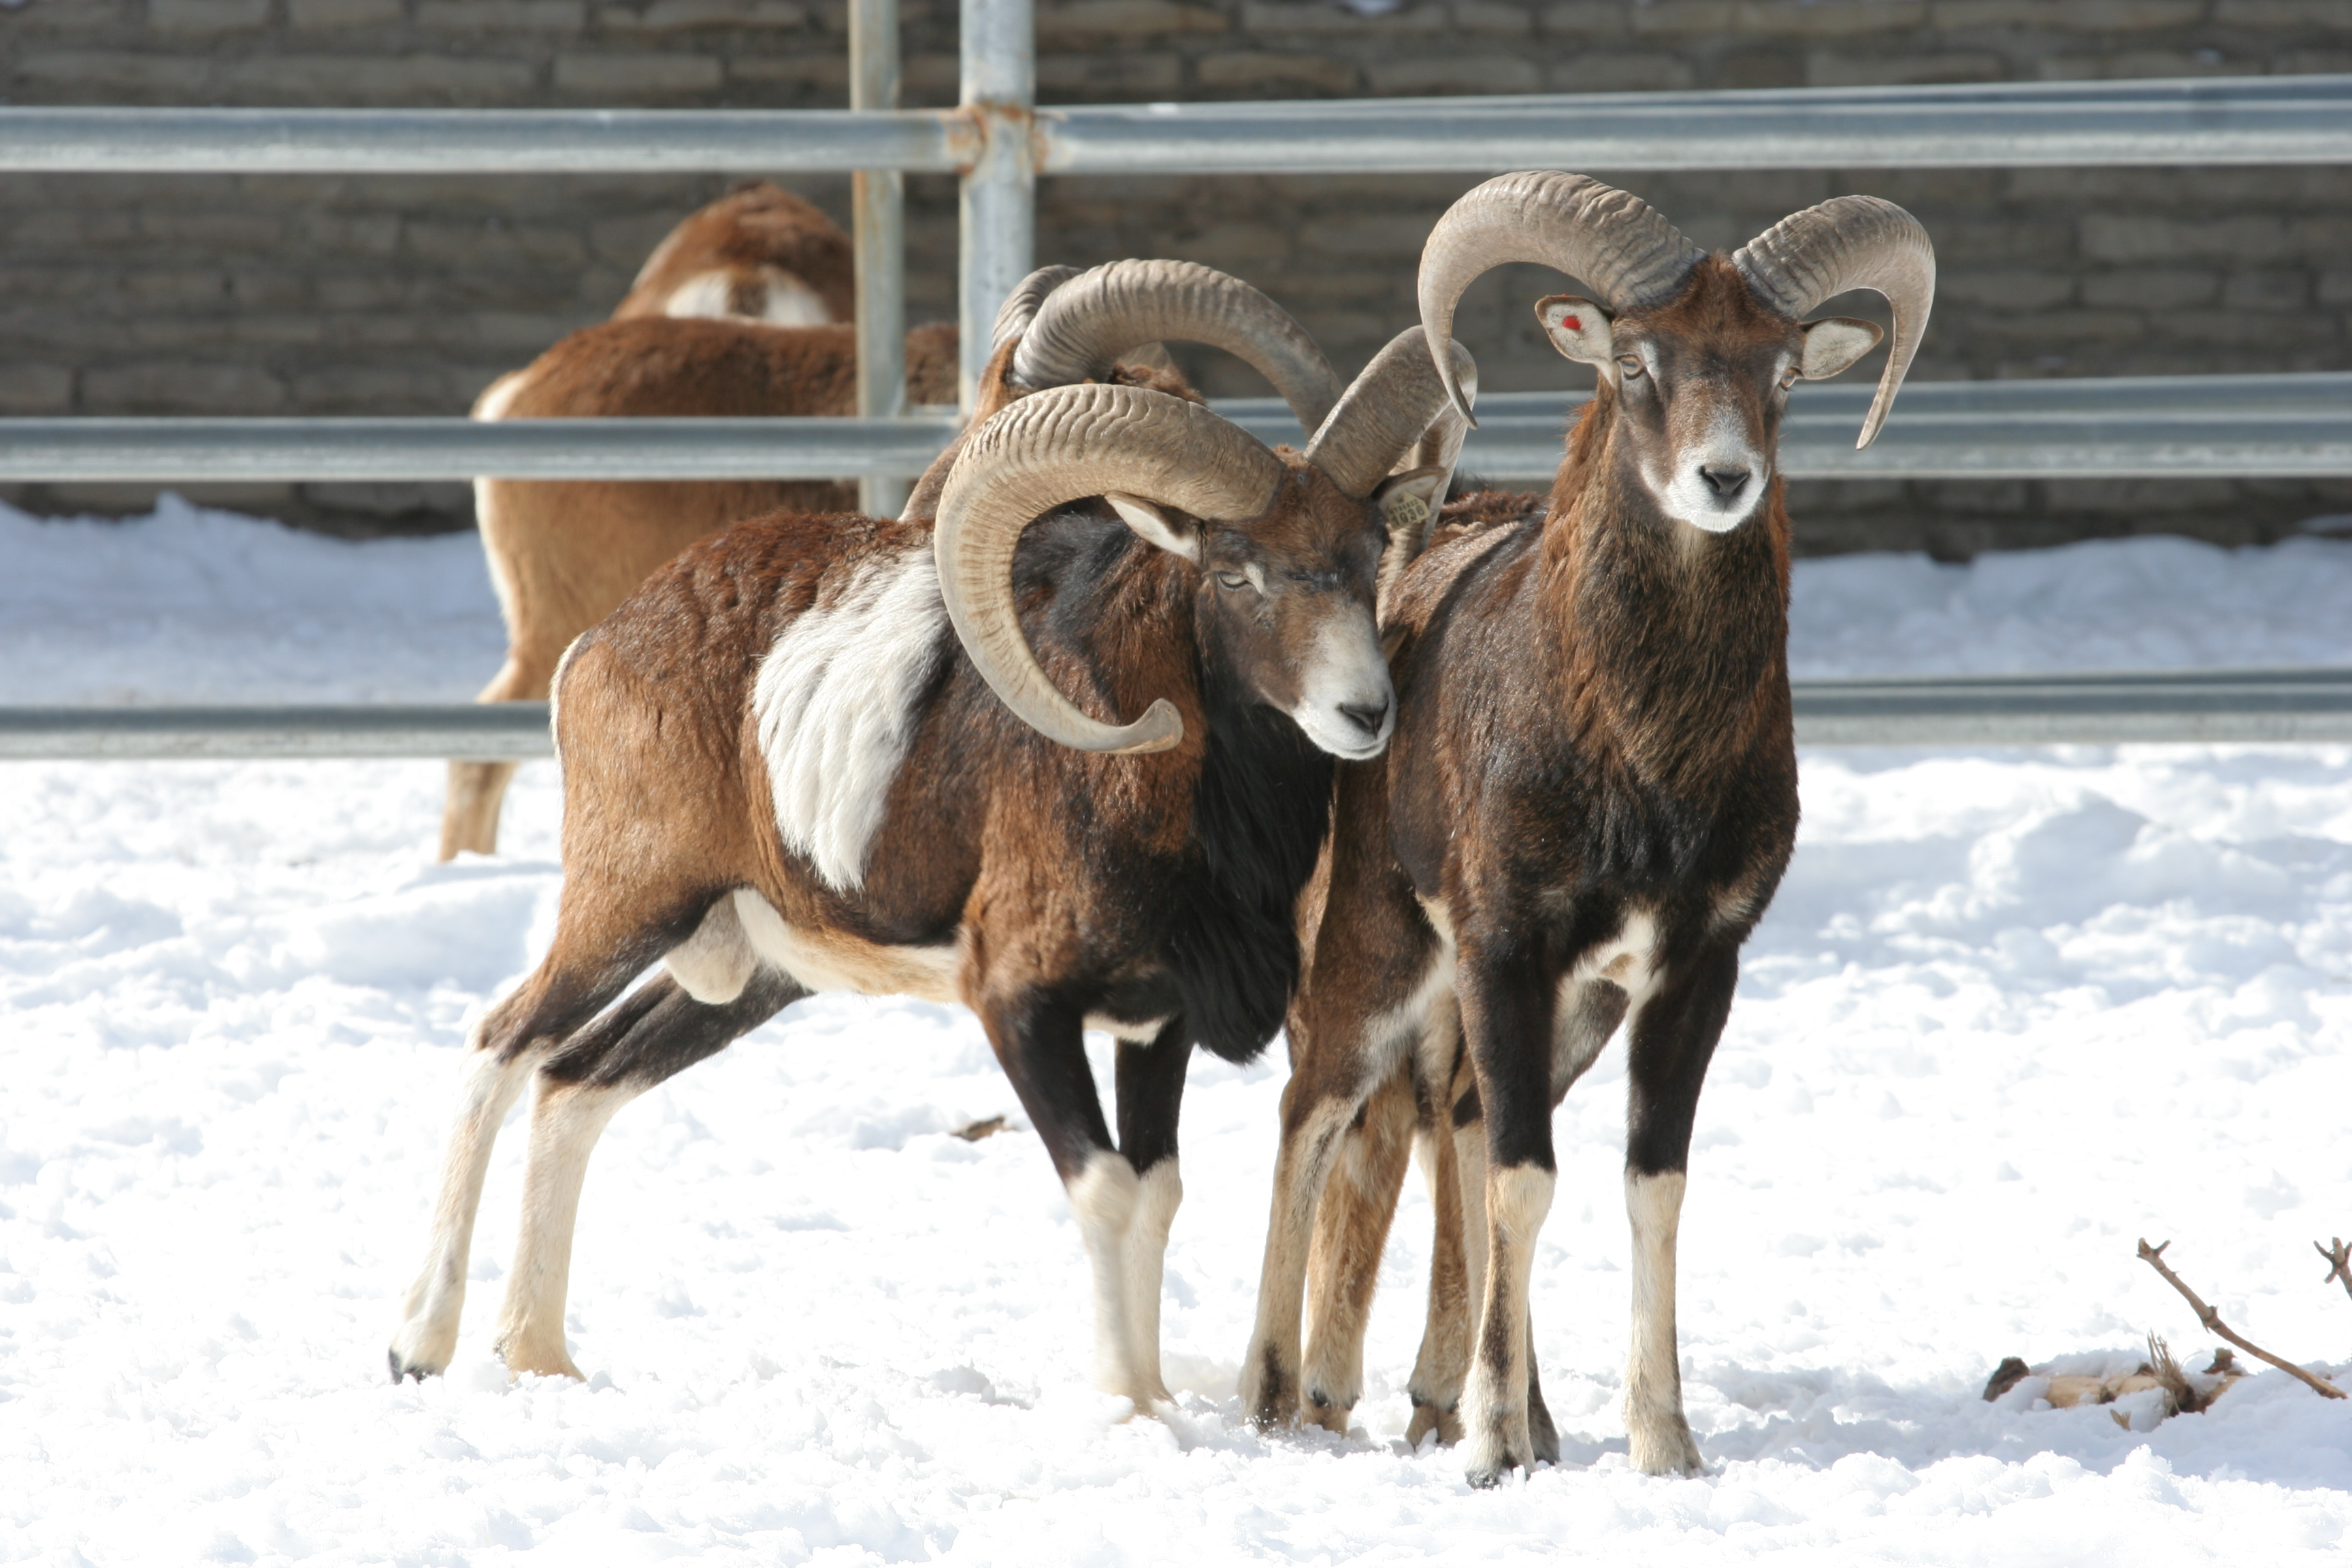 https://upload.wikimedia.org/wikipedia/commons/c/c1/Mouflon_in_zoo.jpg